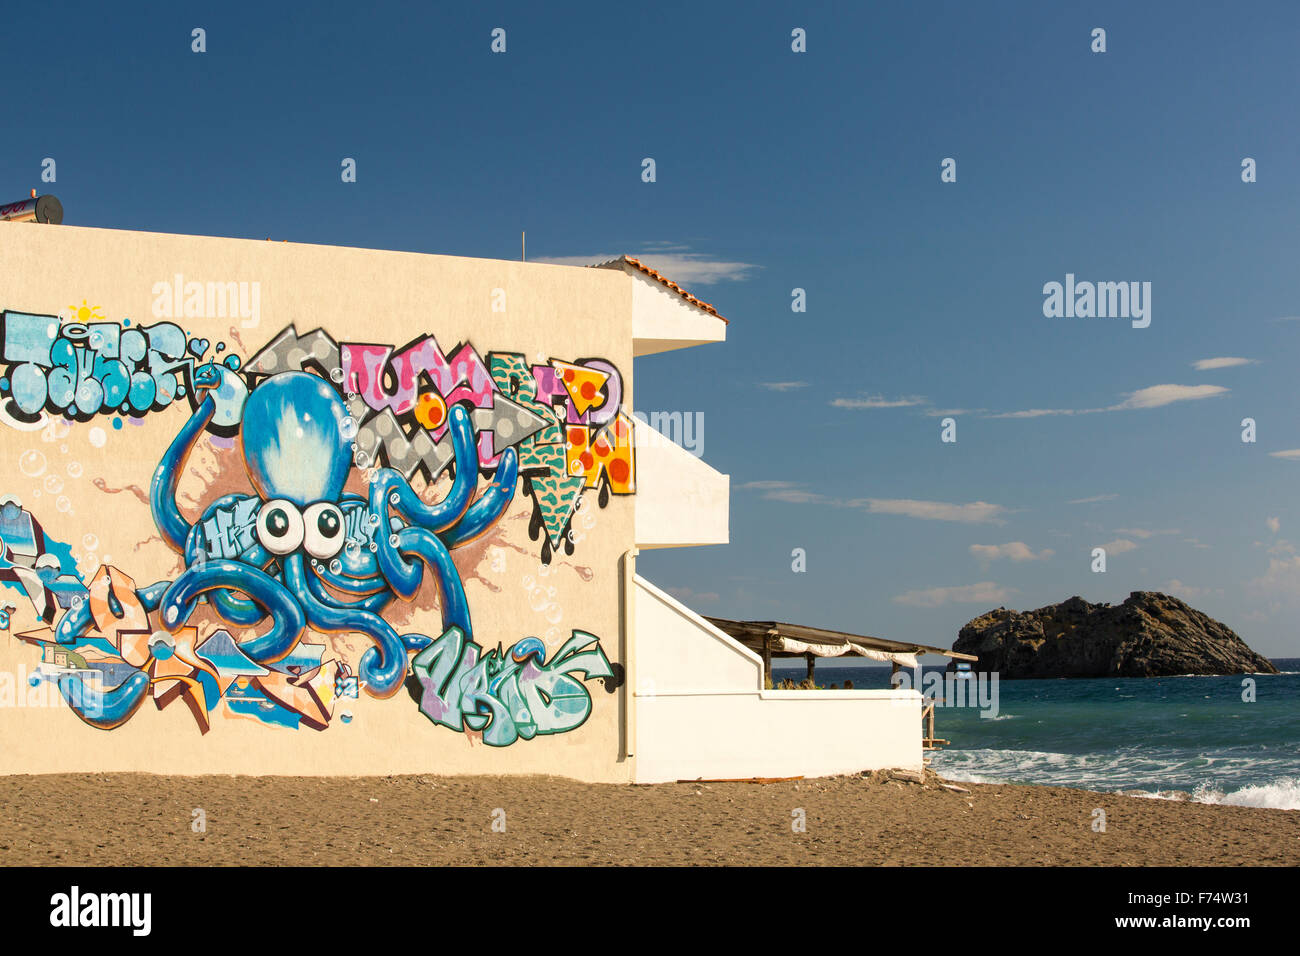 A hotel with an octopus mural on the wall in Skala Eresou, on Lesvos, Greece. Stock Photo